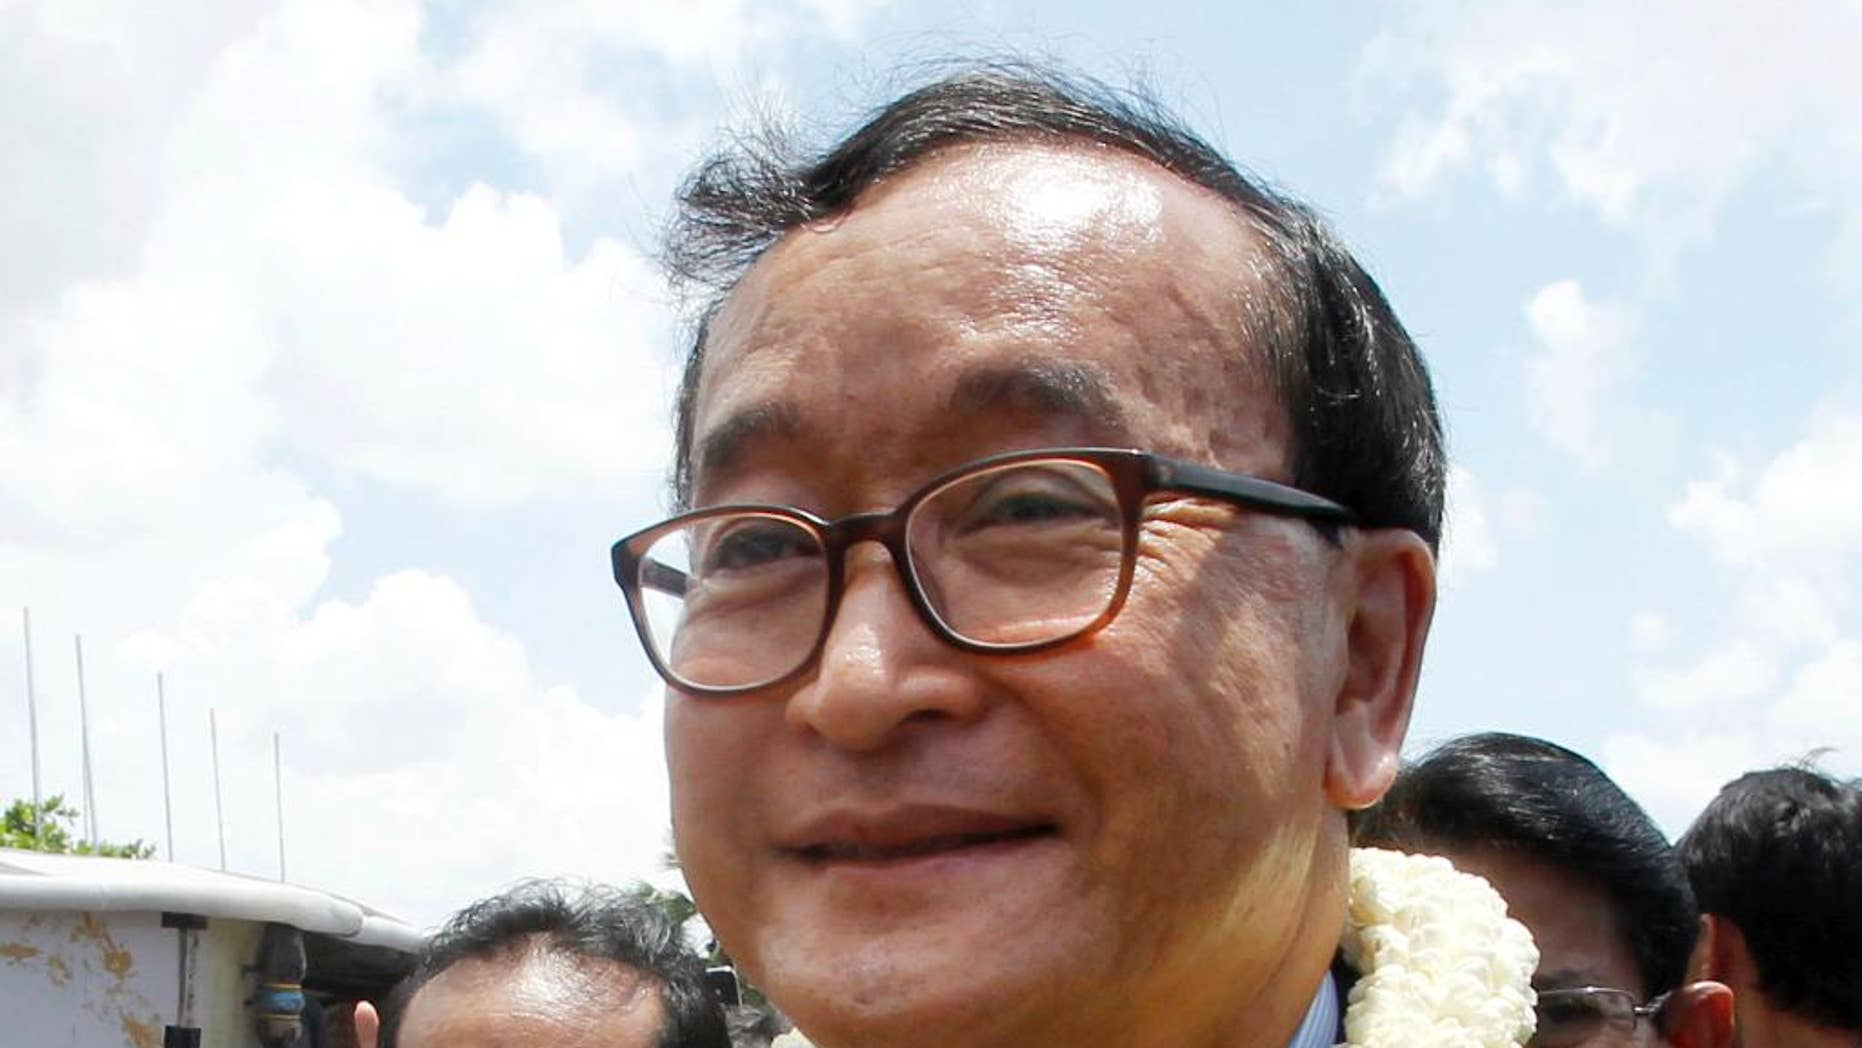 "FILE - In this Aug. 16, 2015, file photo, Sam Rainsy, leader of the opposition Cambodia National Rescue Party, greets his party supporters upon his arrival at Phnom Penh International Airport in Phnom Penh, Cambodia. The Phnom Penh Municipal Court on Tuesday, Nov. 8, 2016, found Sam Rainsy, country's exiled opposition leader, guilty of defamation for alleging that a senior government official sought to inflate Prime Minister Hun Sen's online popularity by buying ""likes"" for his Facebook page. (AP Photo/Heng Sinith, File)"